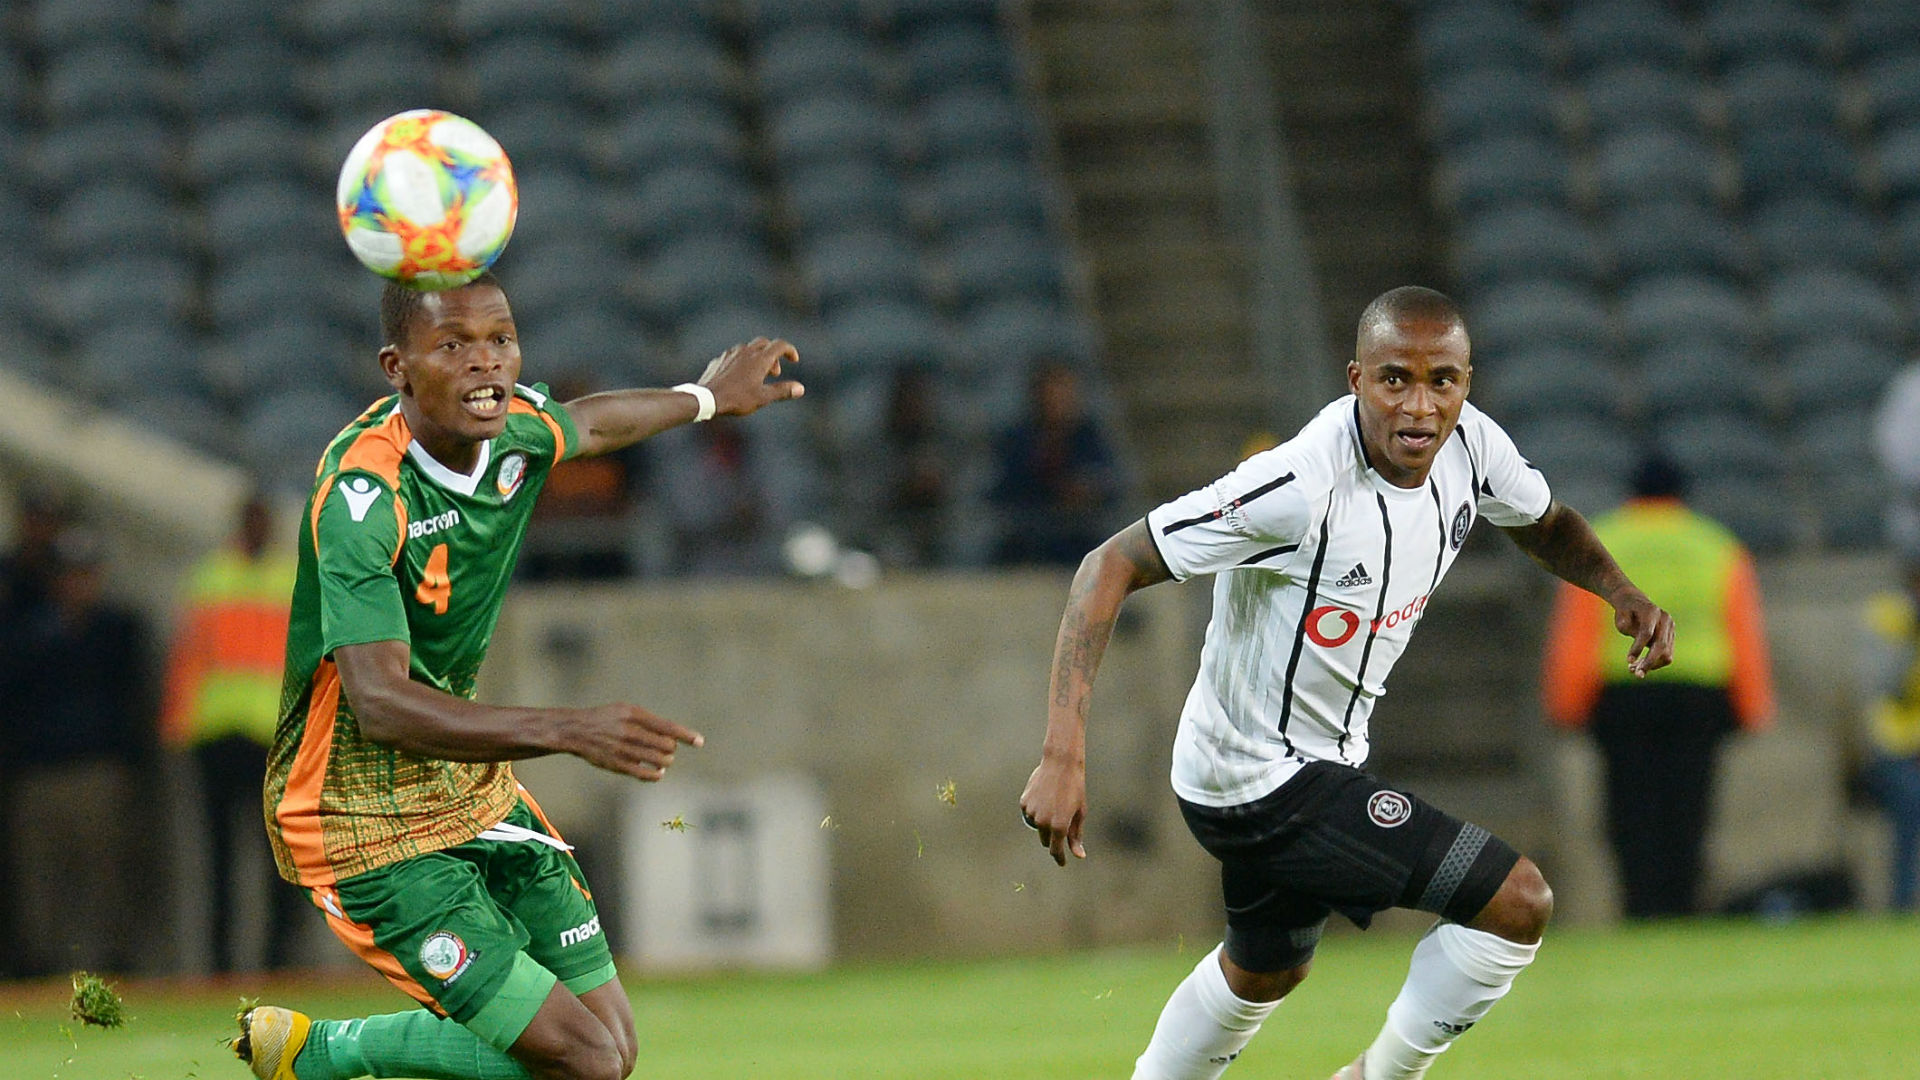 Thembinkosi Lorch of Orlando Pirates against Green Eagles, August 2019